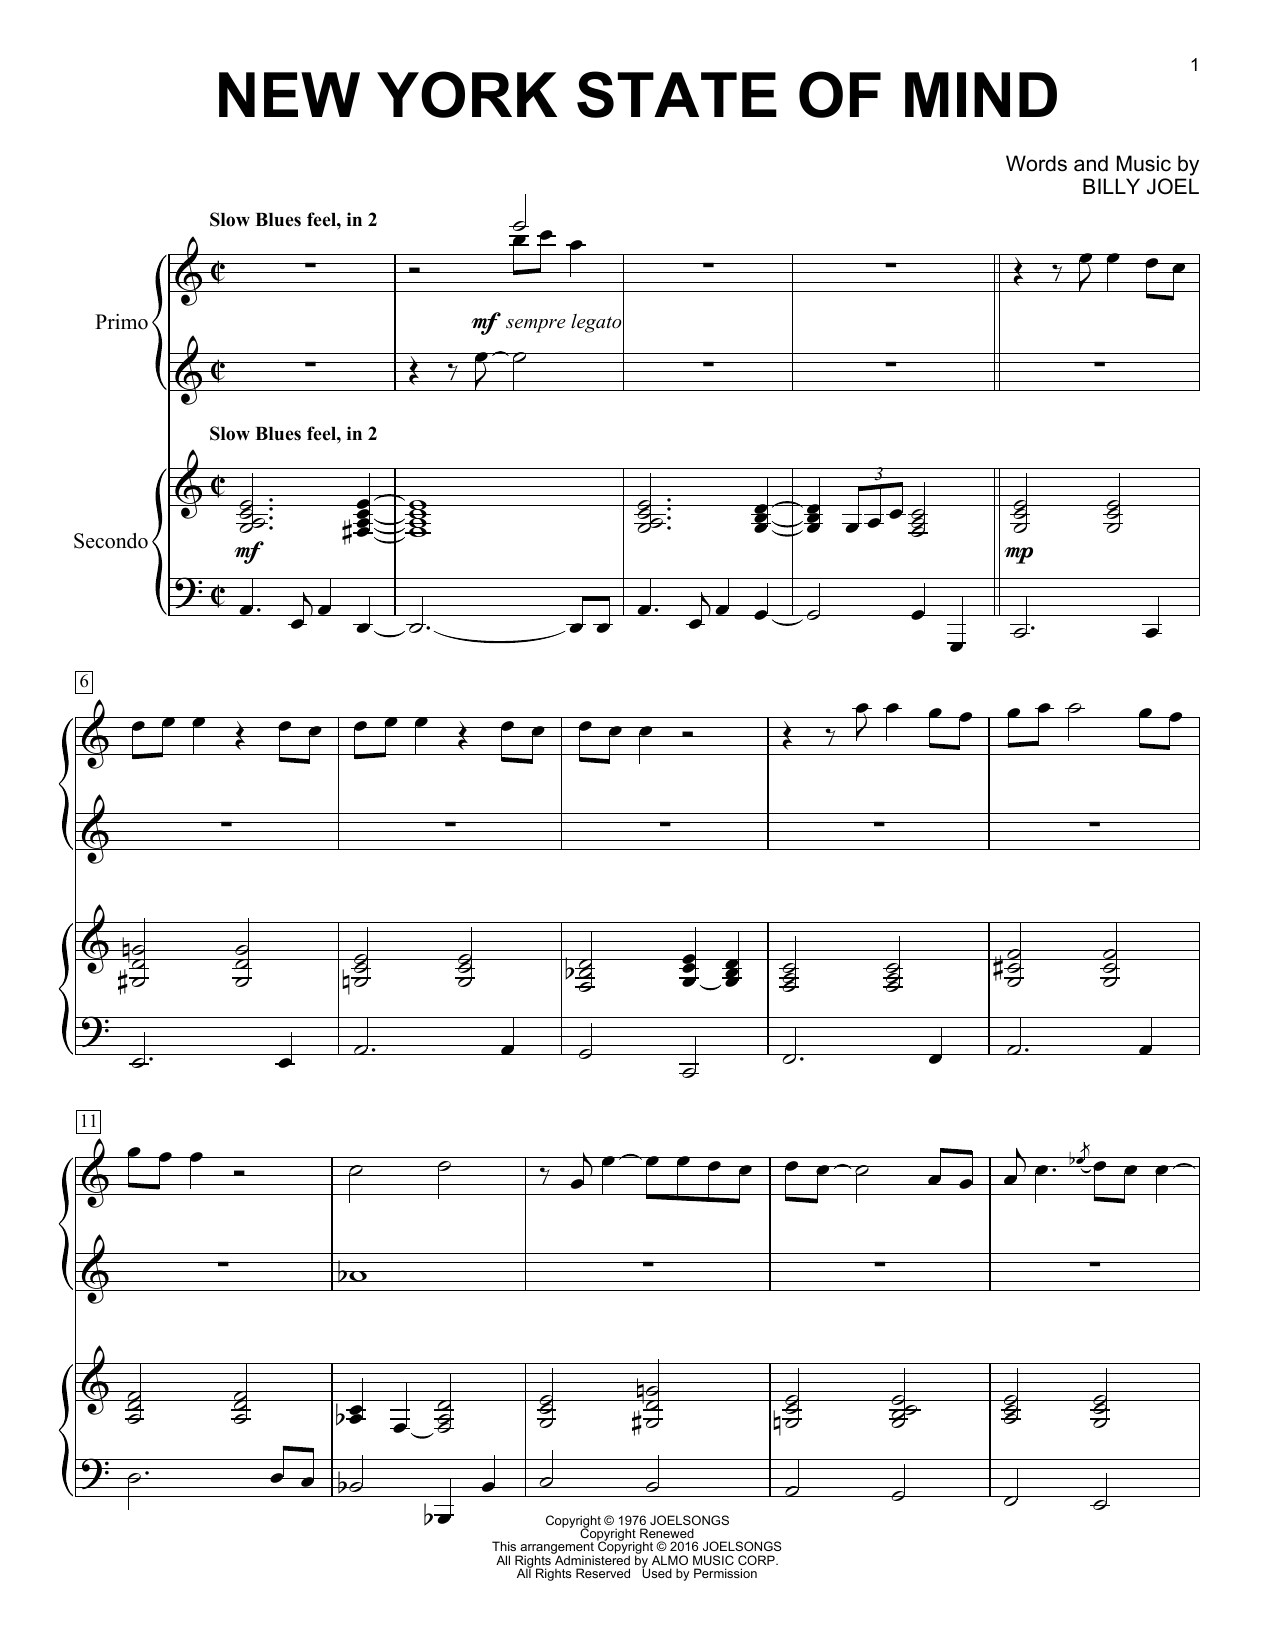 Billy Joel 'New York State Of Mind' Sheet Music Notes, Chords | Download  Printable Piano Duet - SKU: 163406